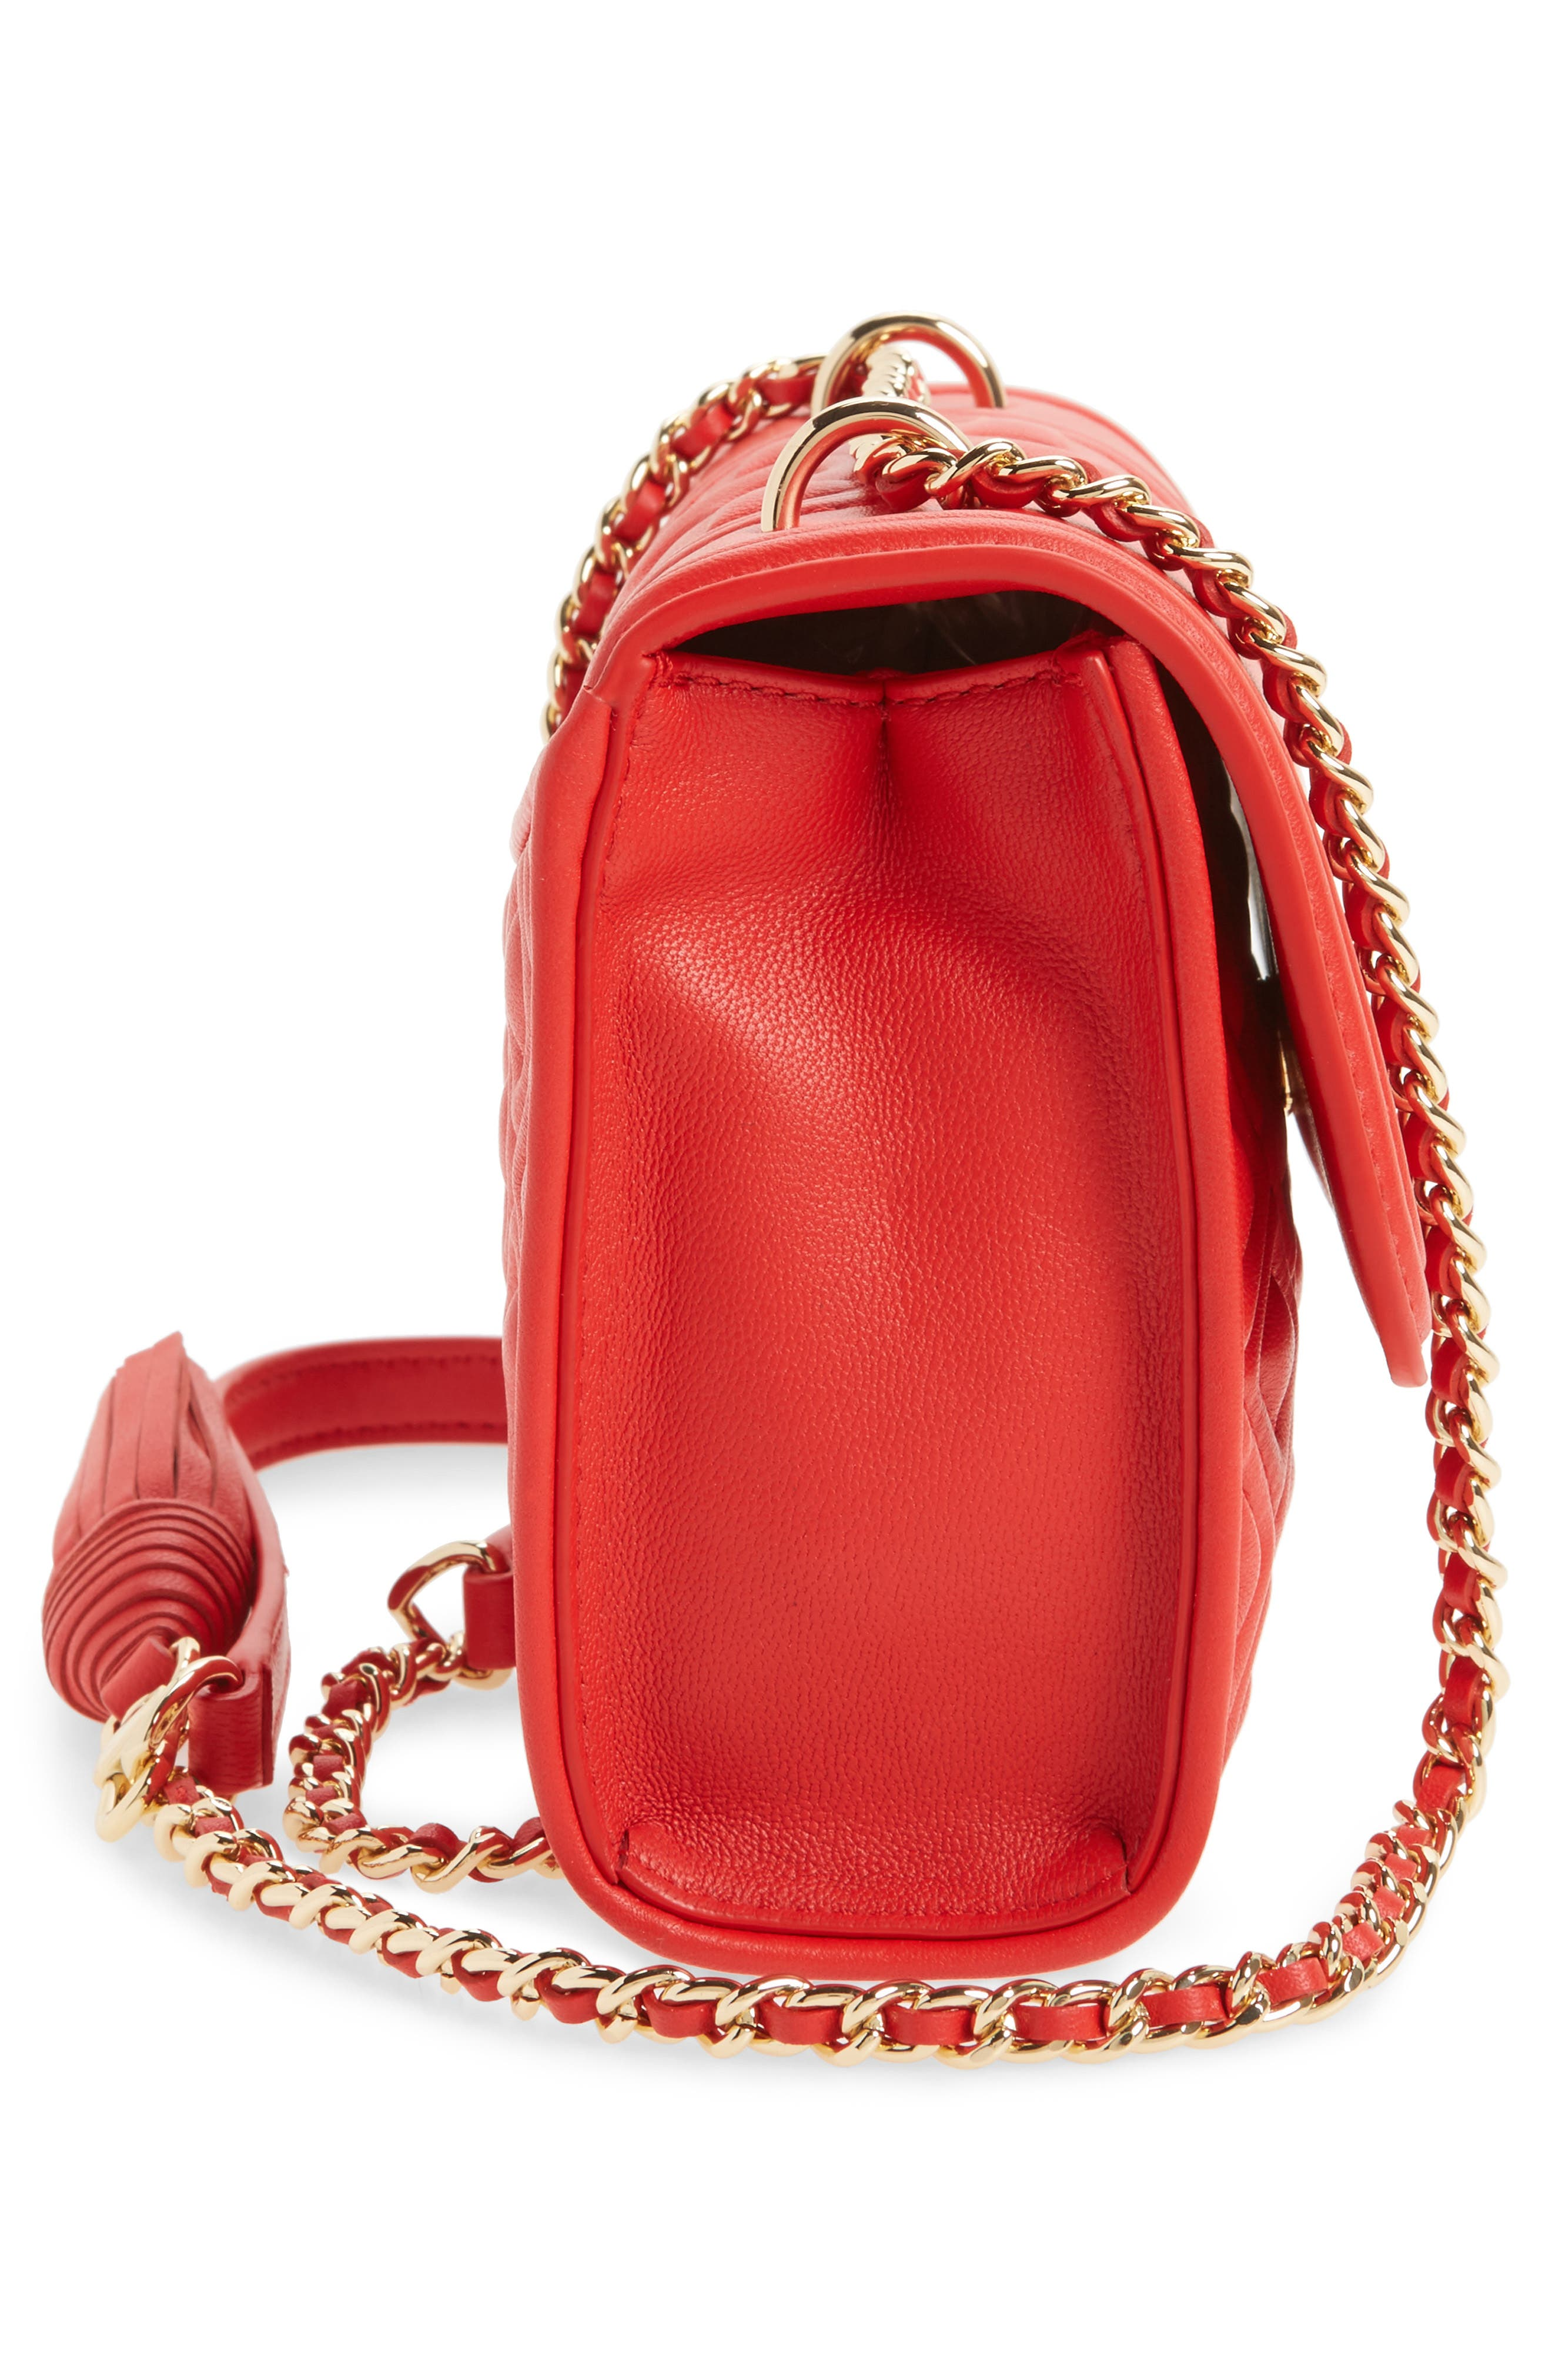 'Small Fleming' Quilted Leather Shoulder Bag,                             Alternate thumbnail 20, color,